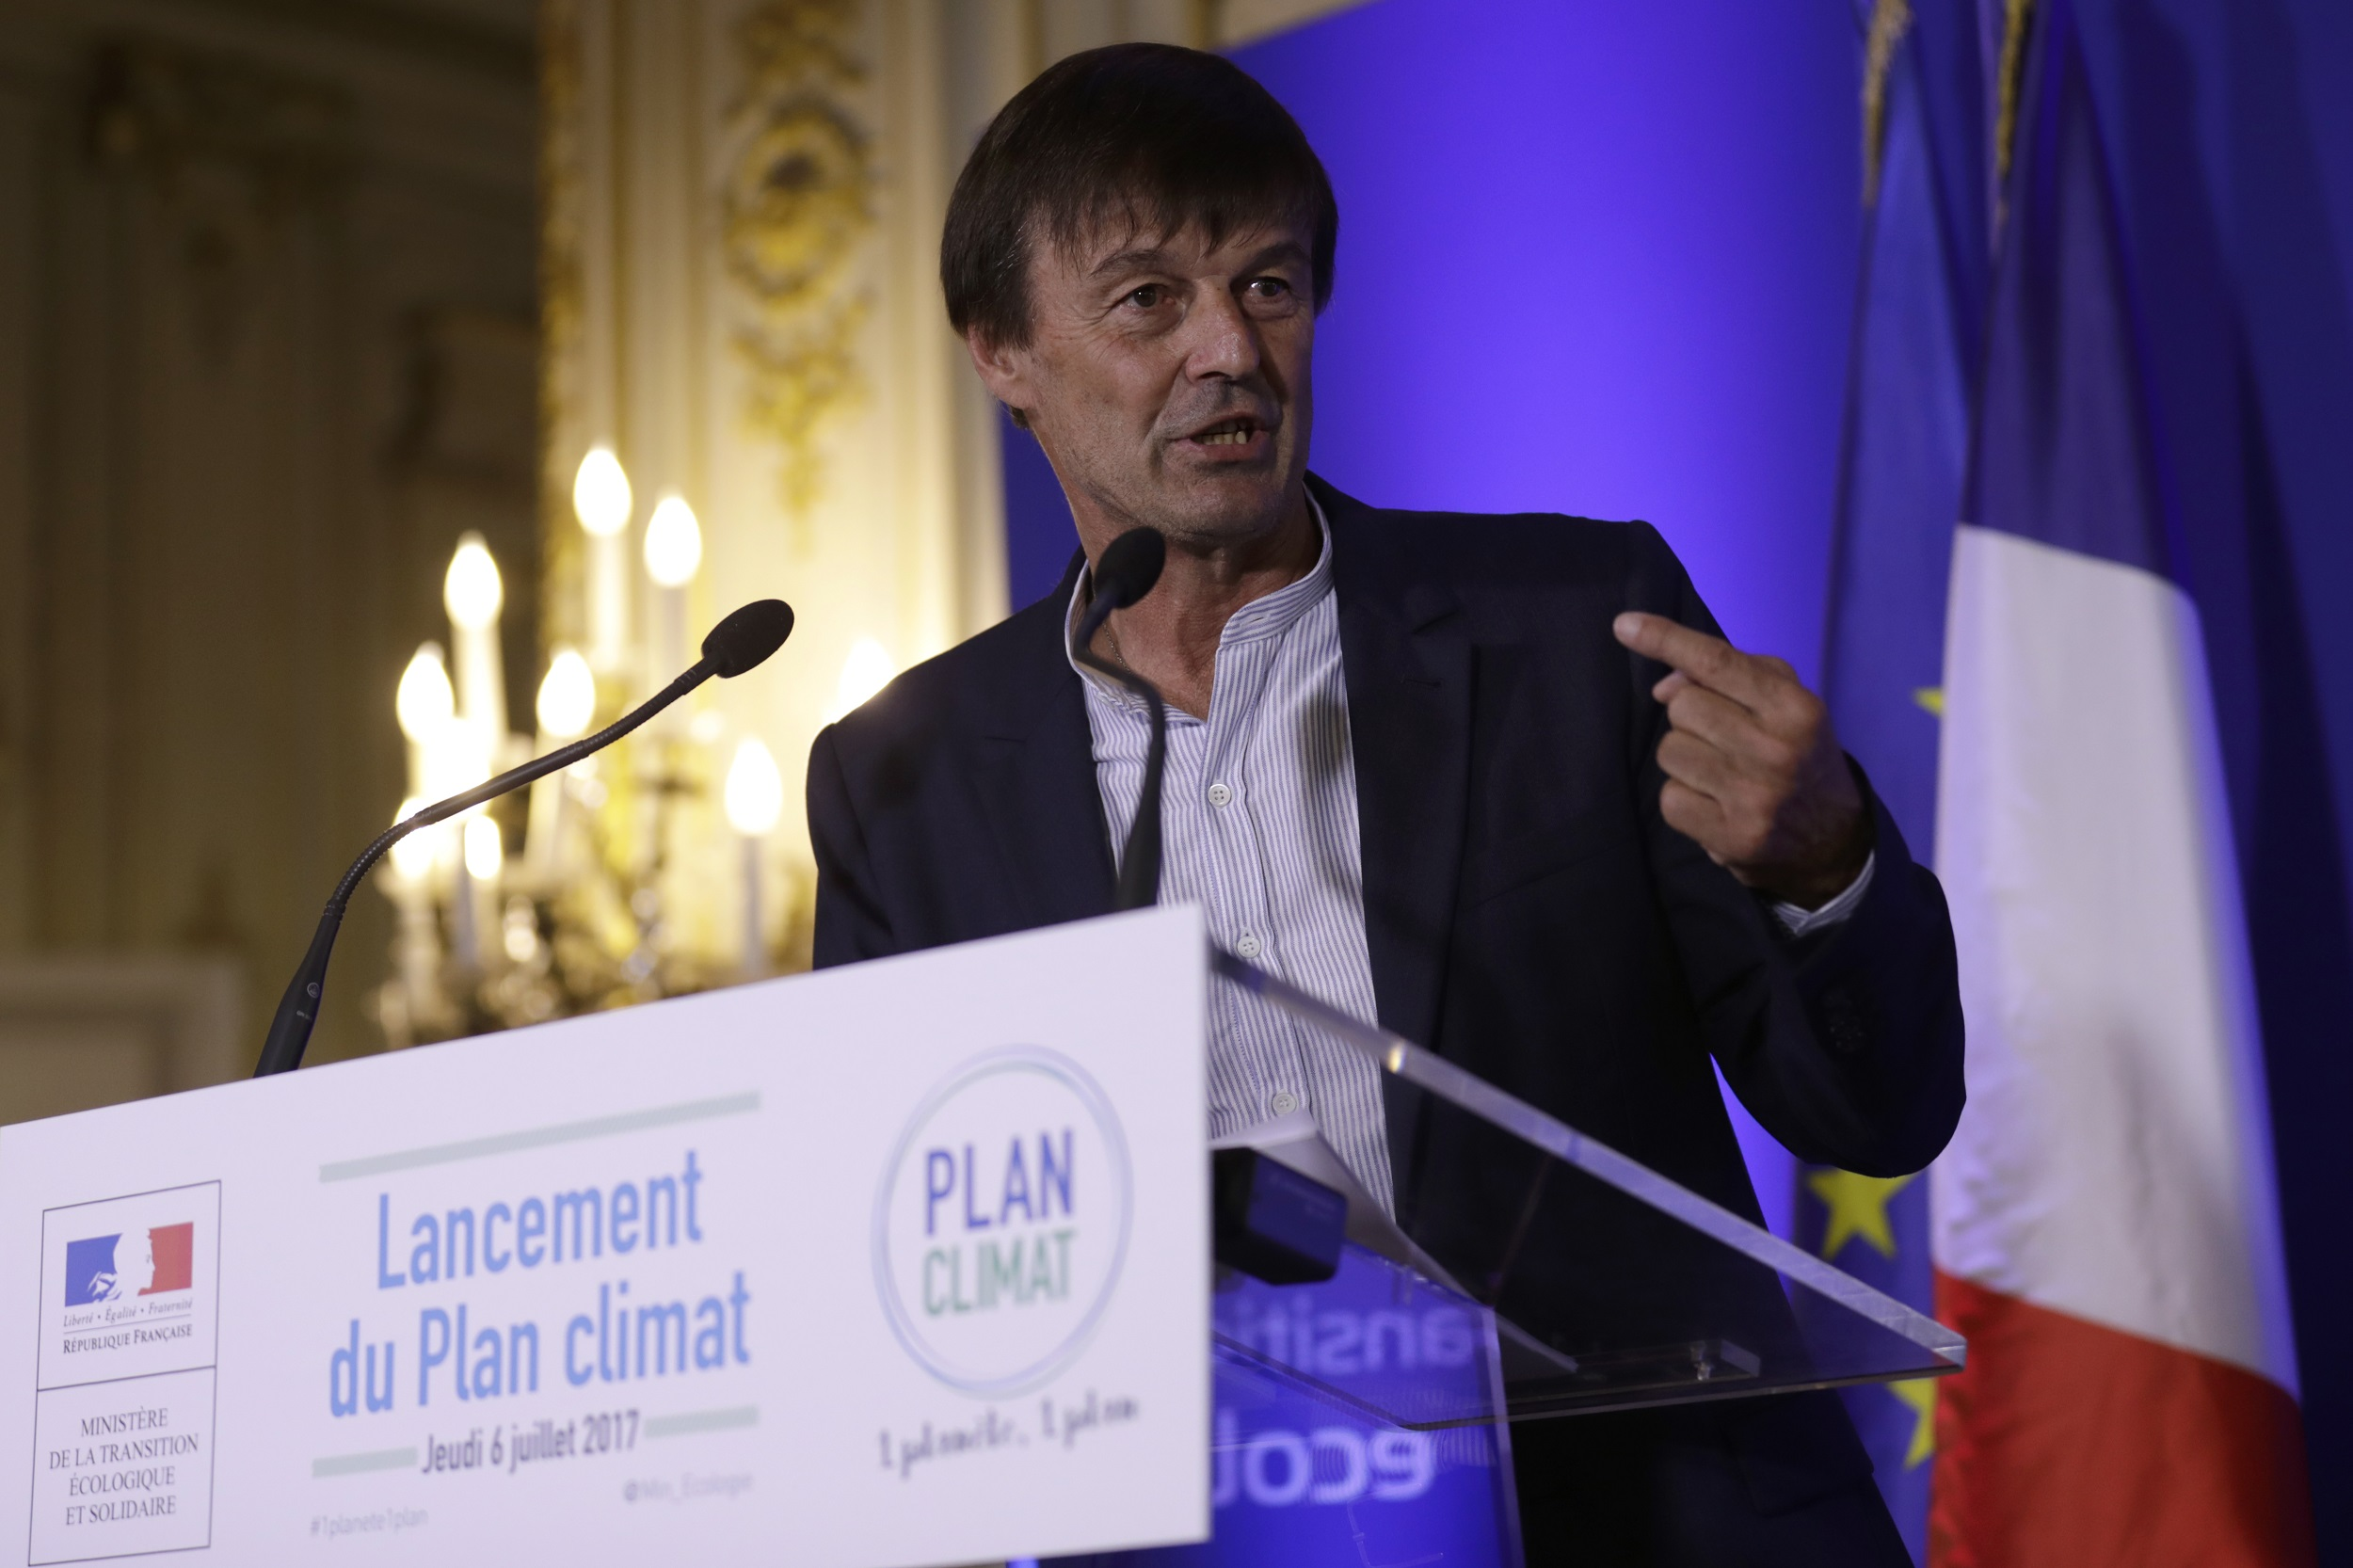 WEB_PHOTO_Nicolas Hulot_06072017